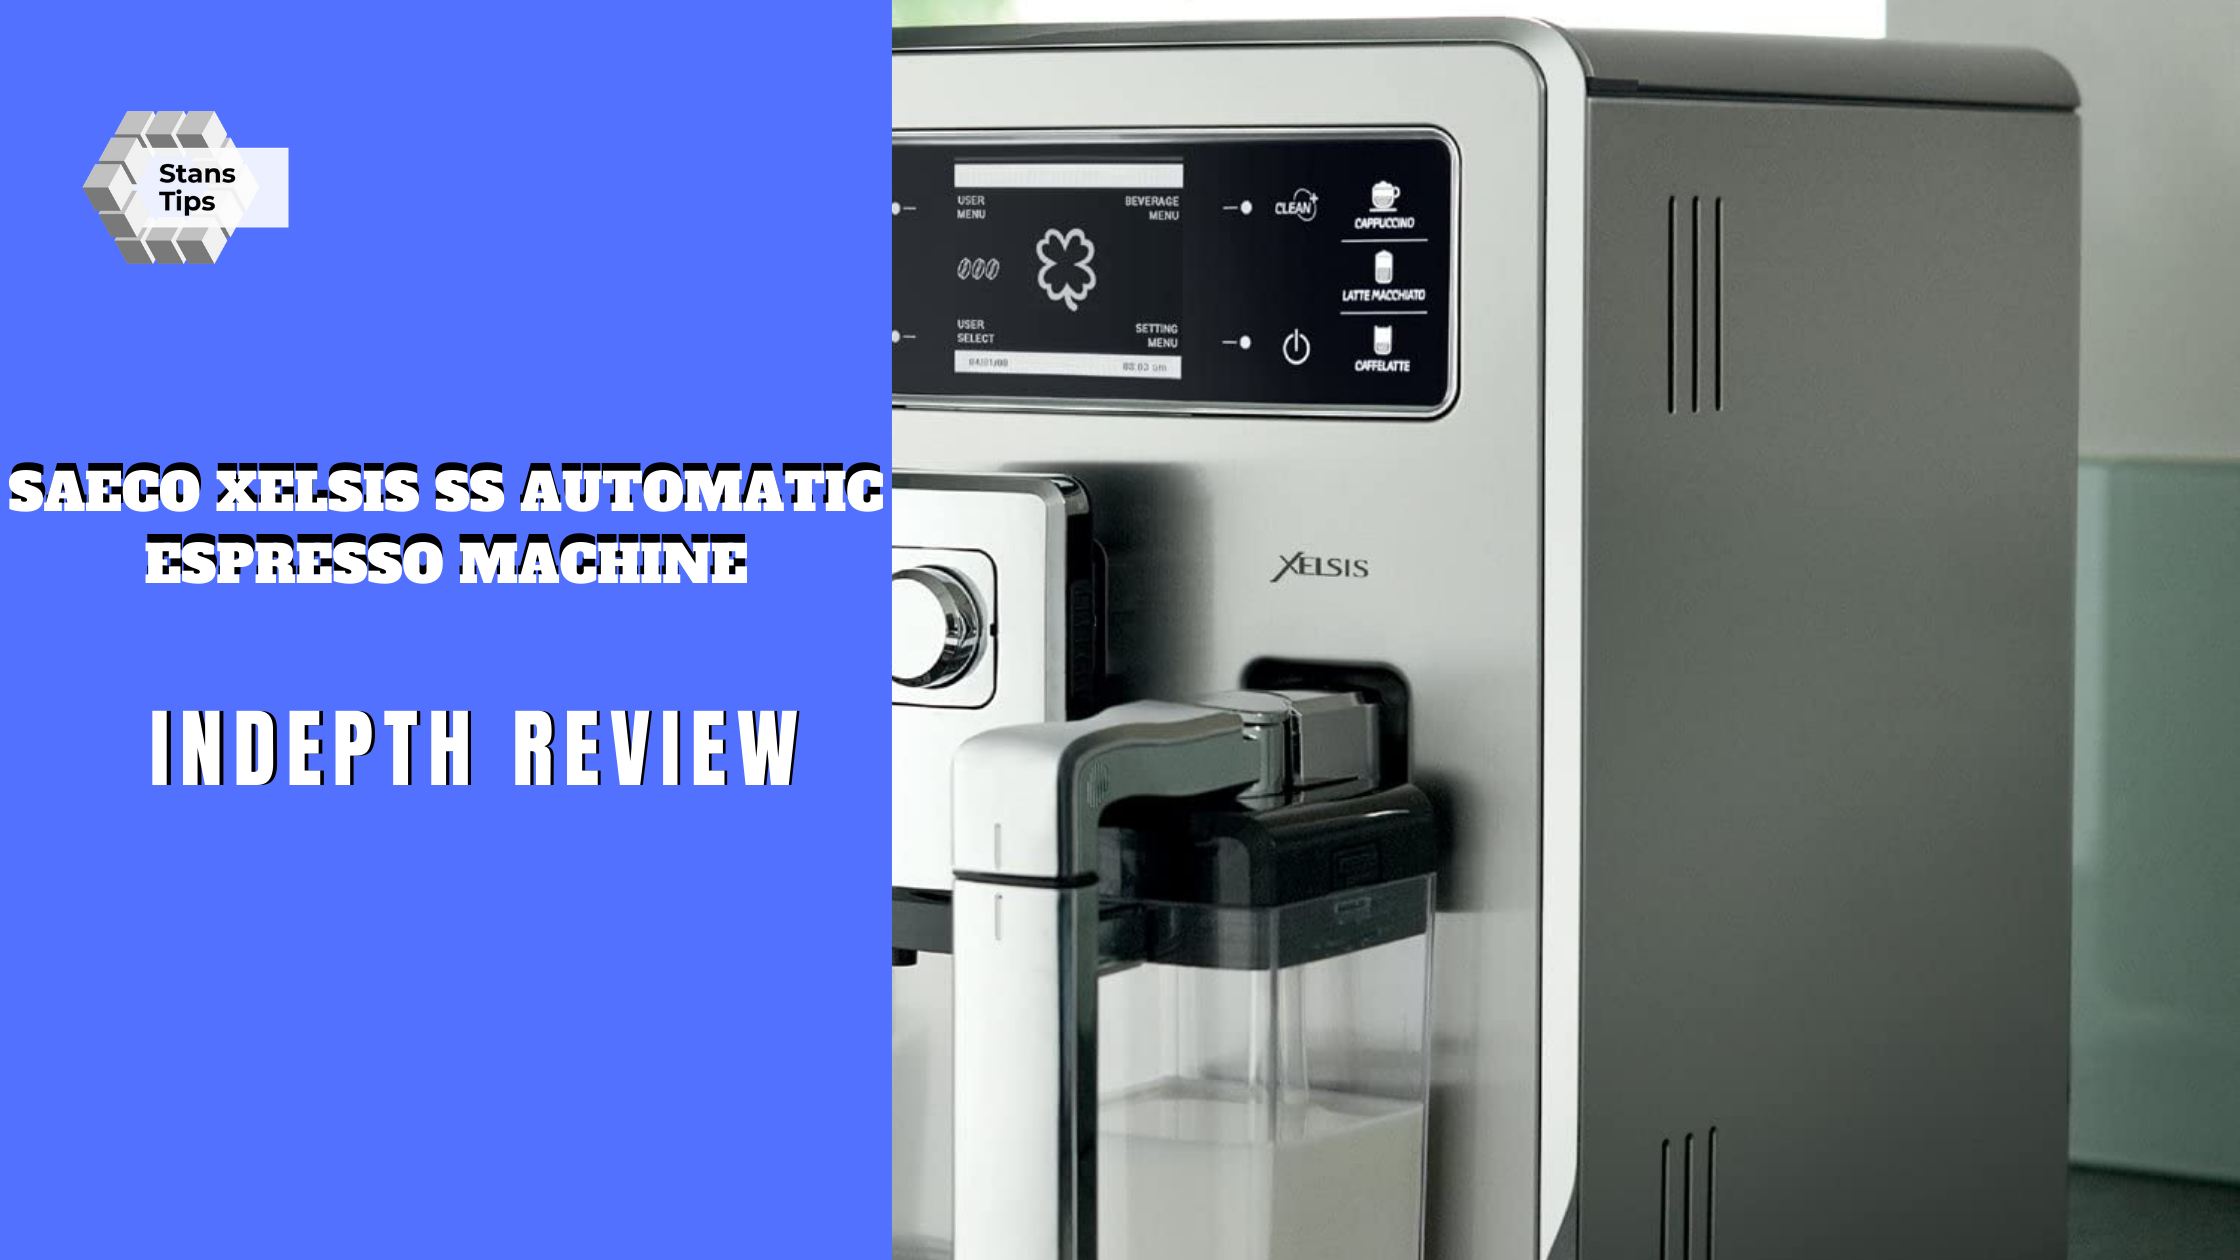 Saeco xelsis ss automatic espresso machine review